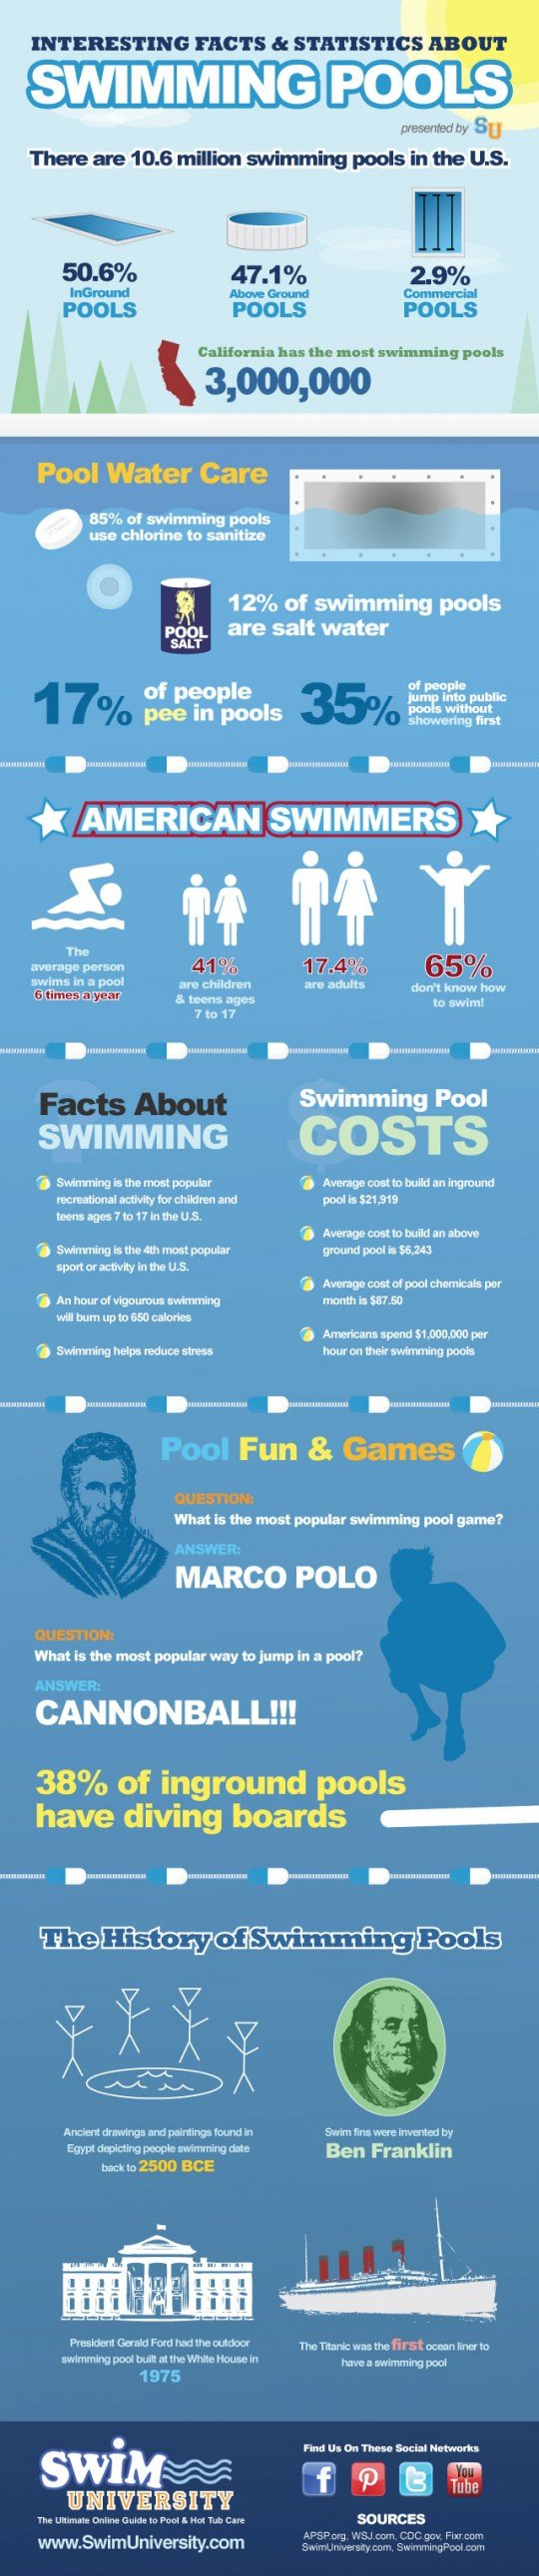 Interesting Facts & Statistics About Swimming Pools